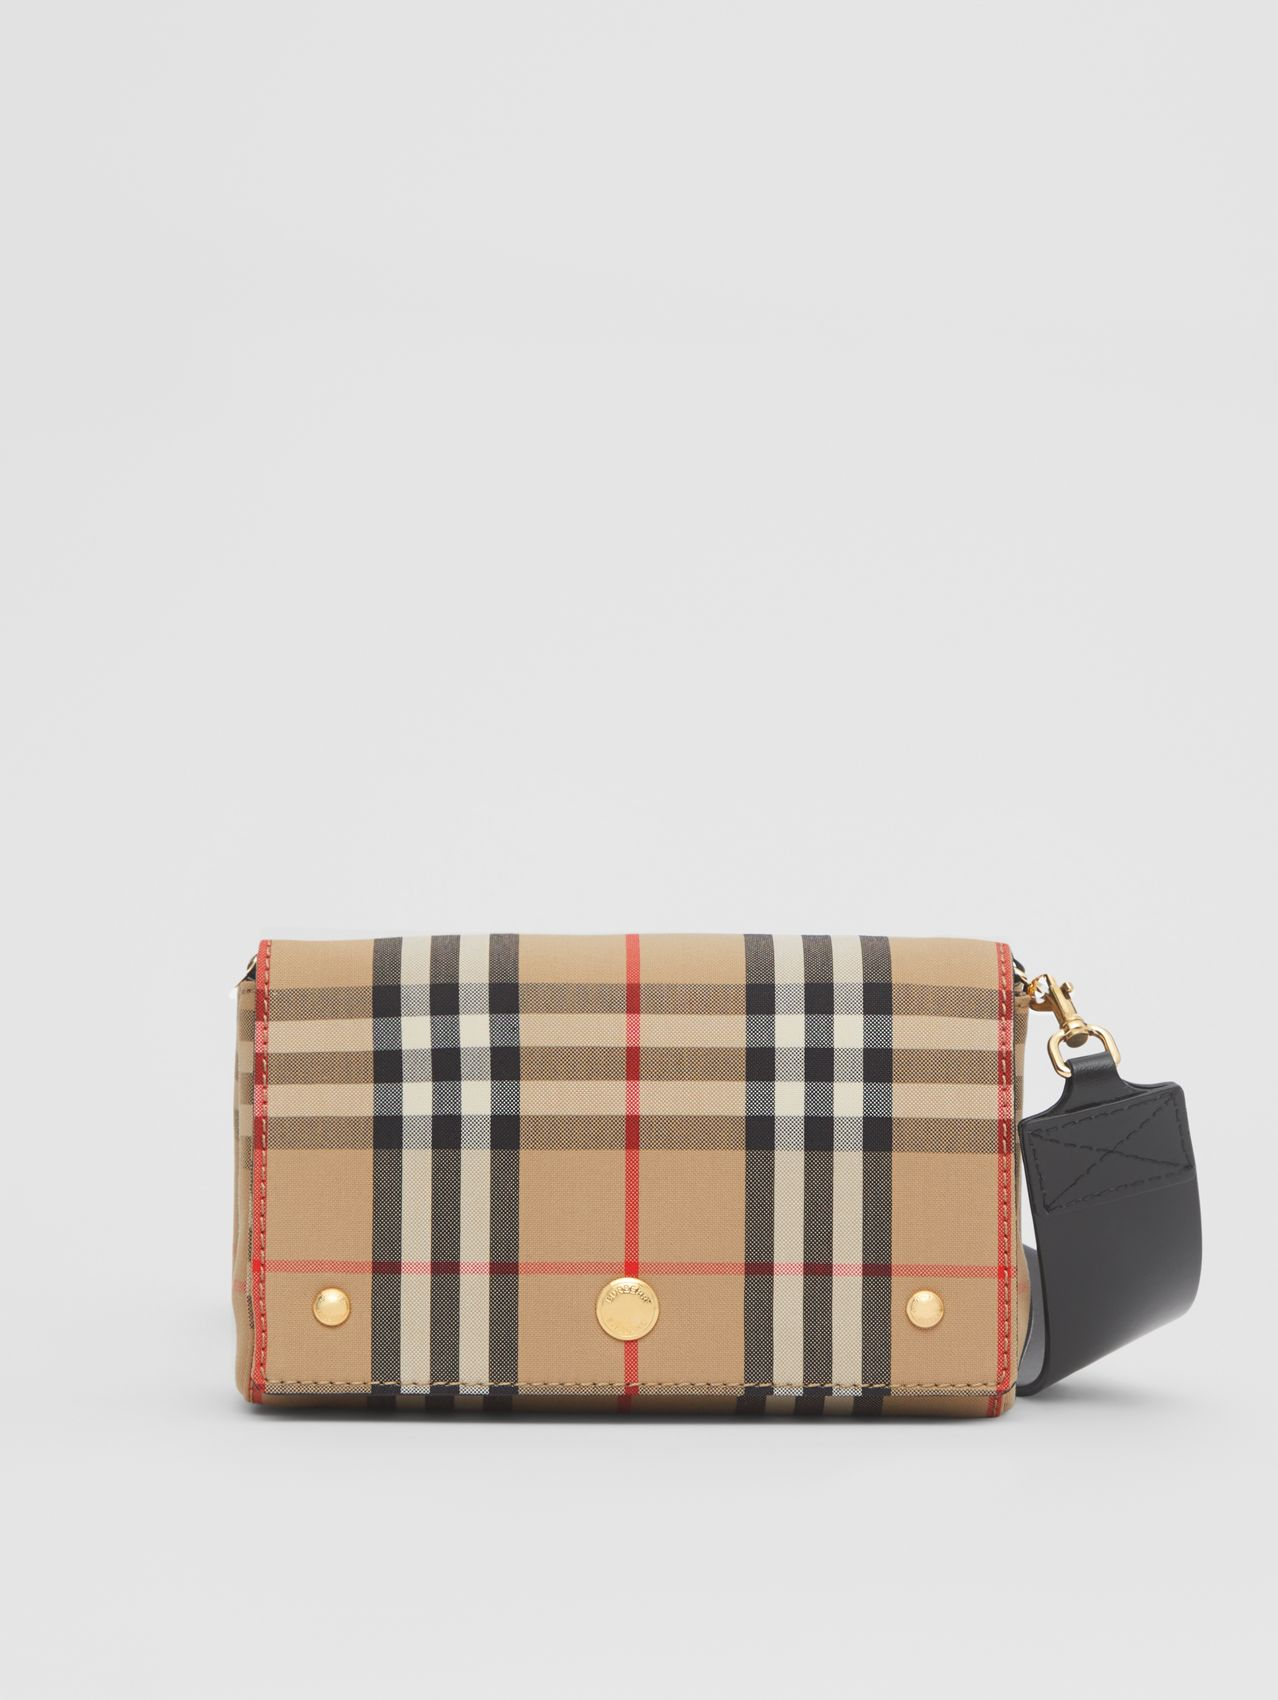 Small Vintage Check and Leather Crossbody Bag (Archive Beige)